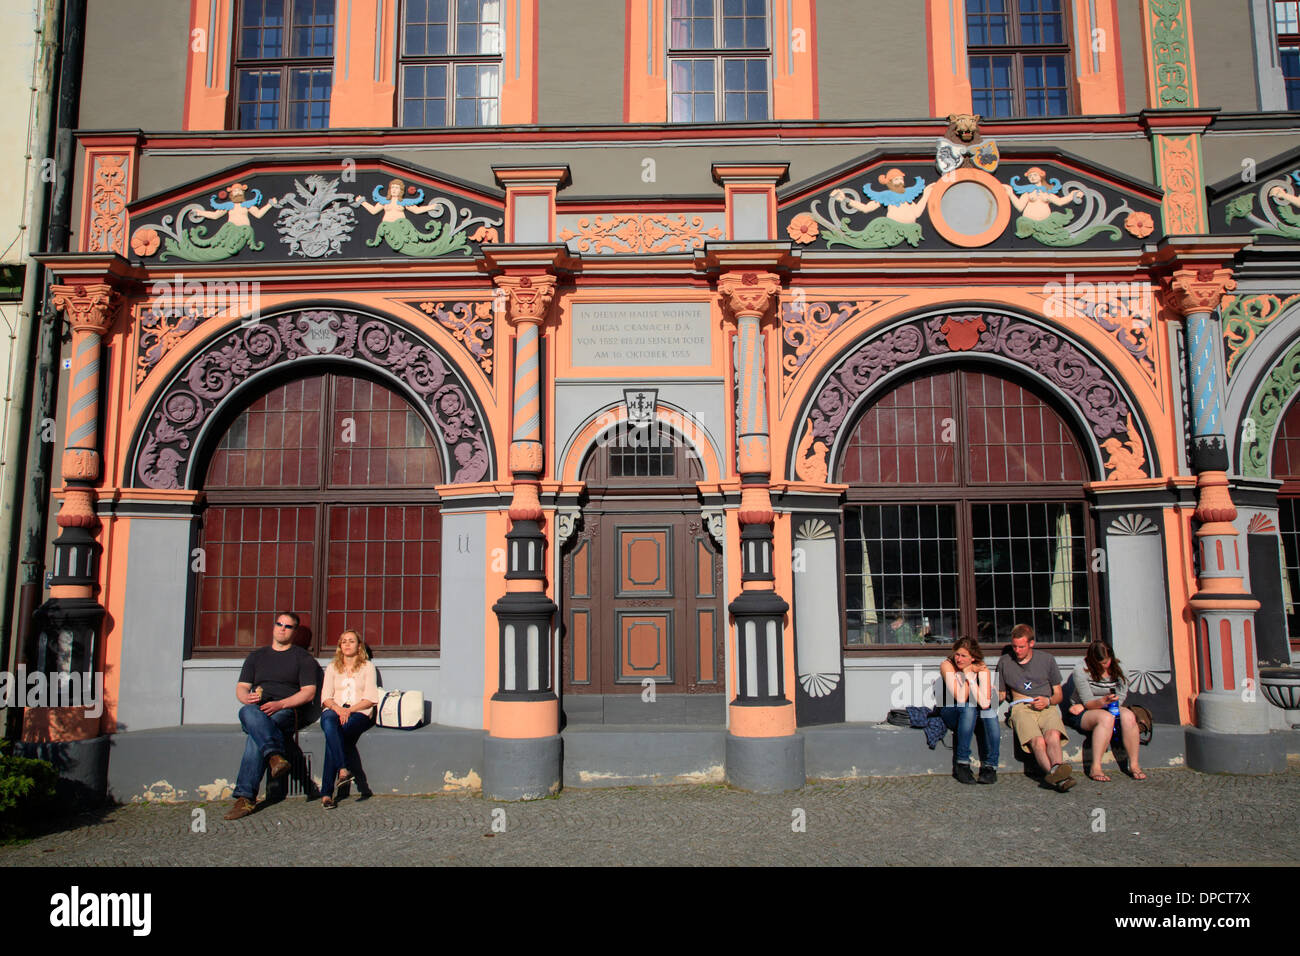 cranach haus am markt platz weimar deutschland europa stockfoto bild 65435998 alamy. Black Bedroom Furniture Sets. Home Design Ideas